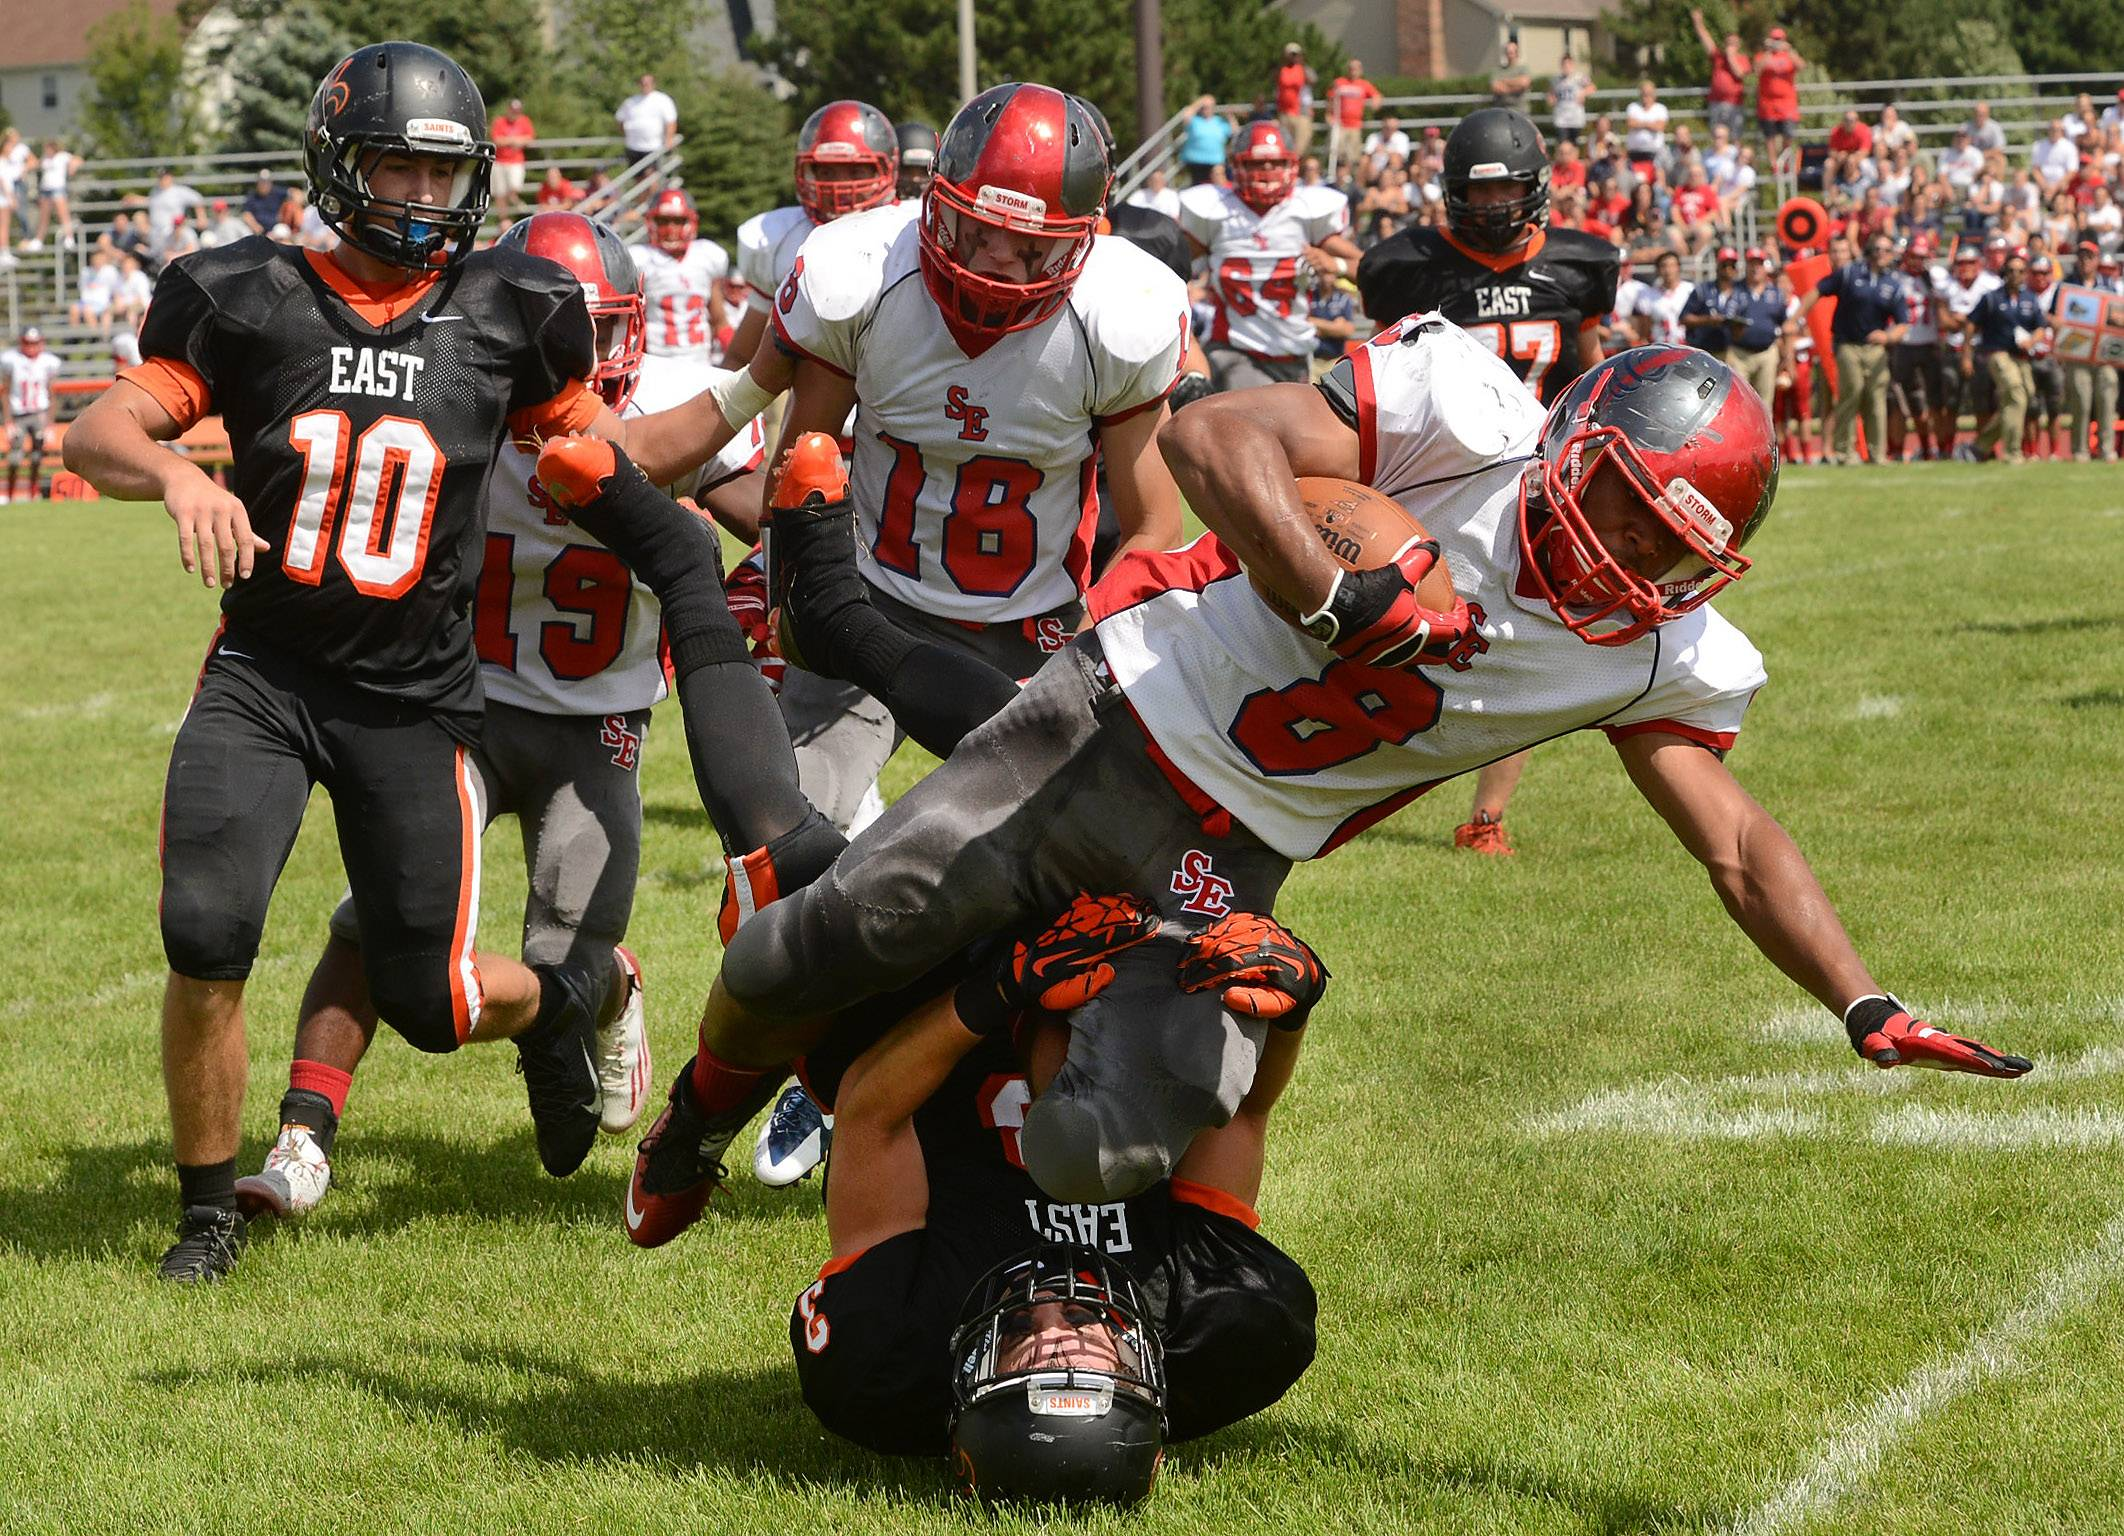 Kyle Ware of South Elgin crashes over St. Charles East's Tommy Fink during the Storm's win Saturday in St. Charles.